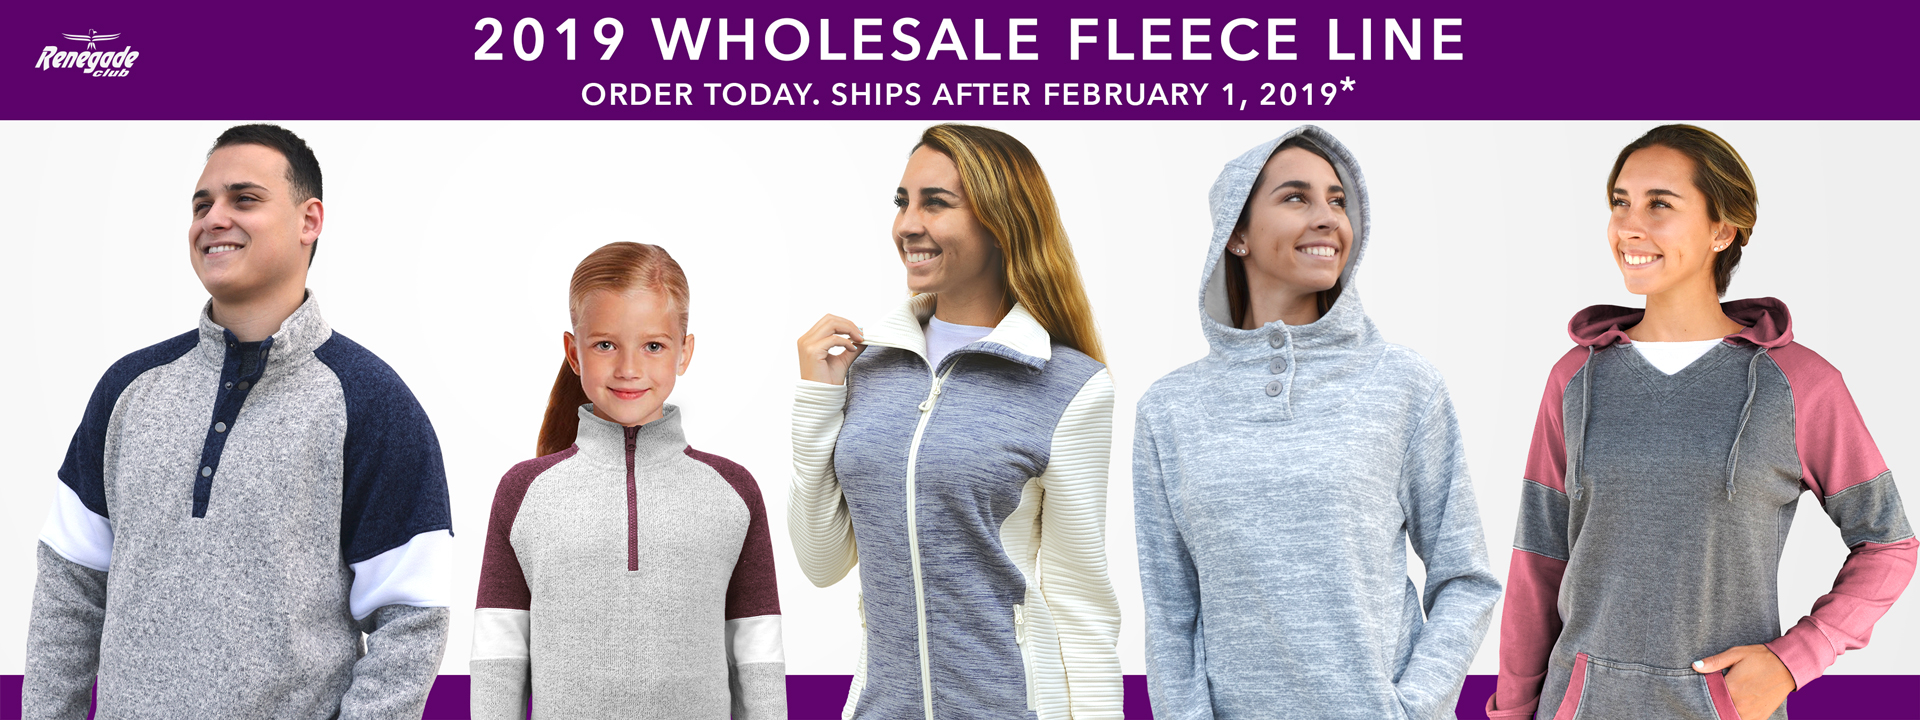 renegade club 2019 wholesale fleece line, women, men, hoodies, fleece jackets, kids, order now, gray, maroon, red, ships after february 1, 2019